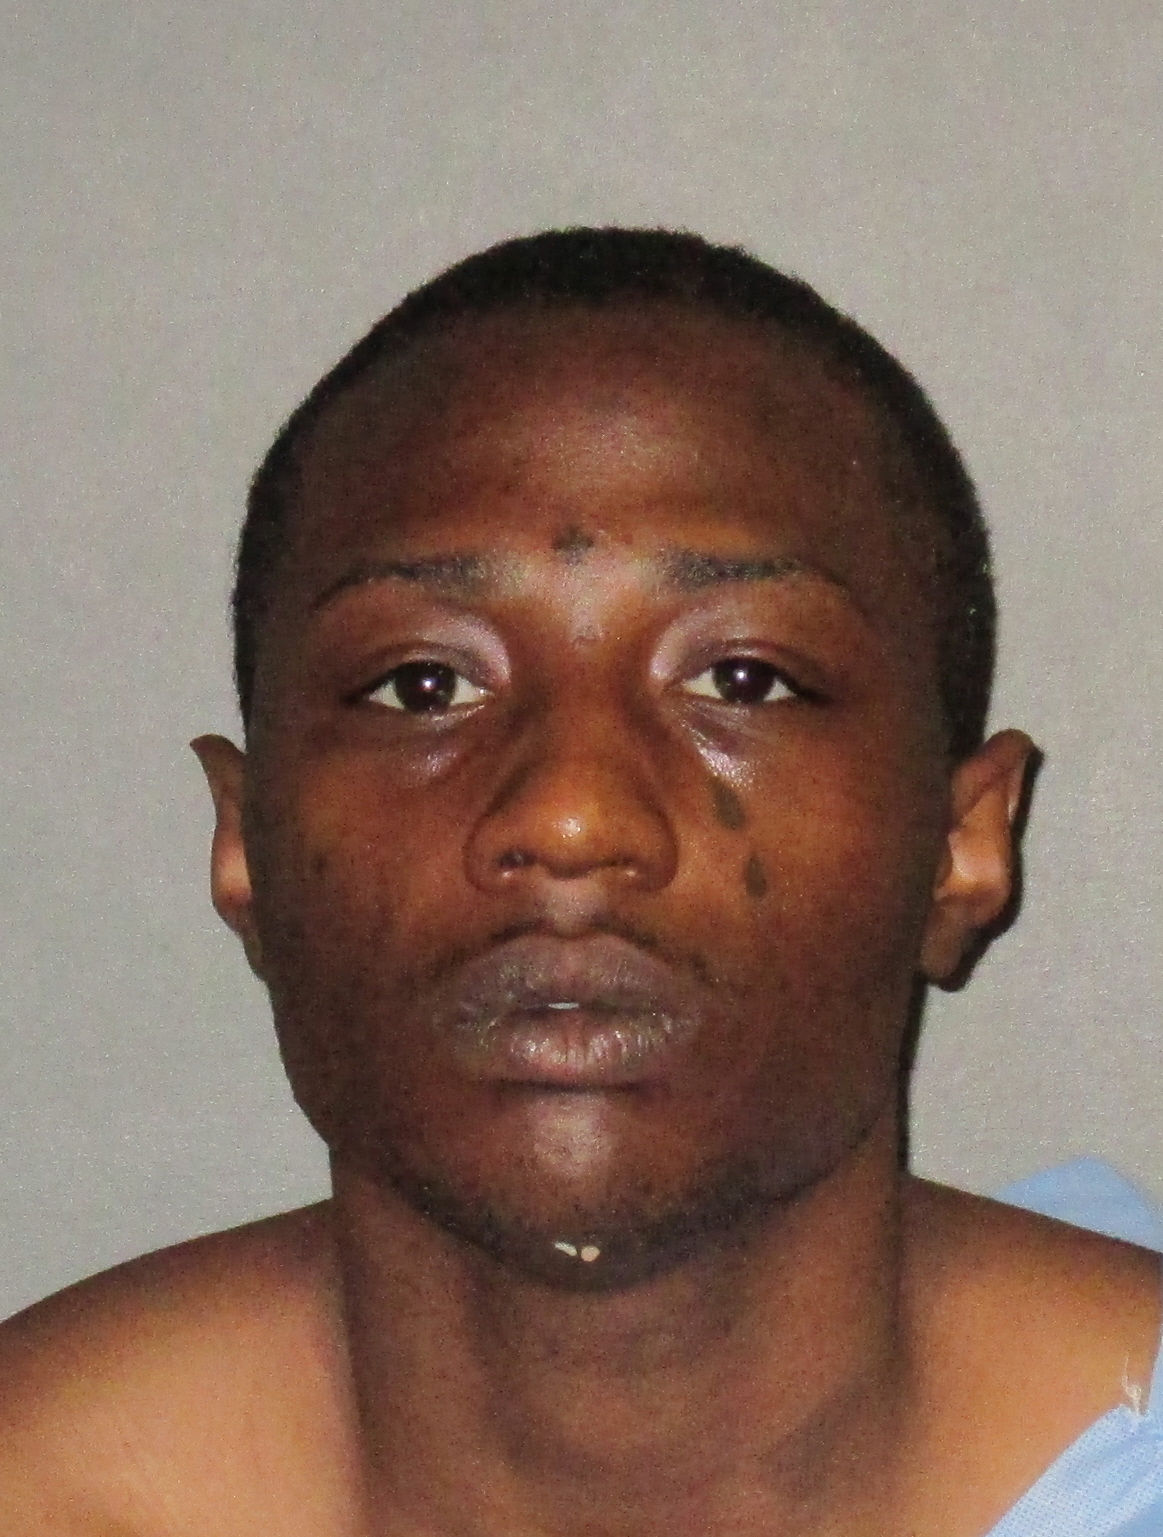 Police: Man arrested after punching out car windows, swinging at police